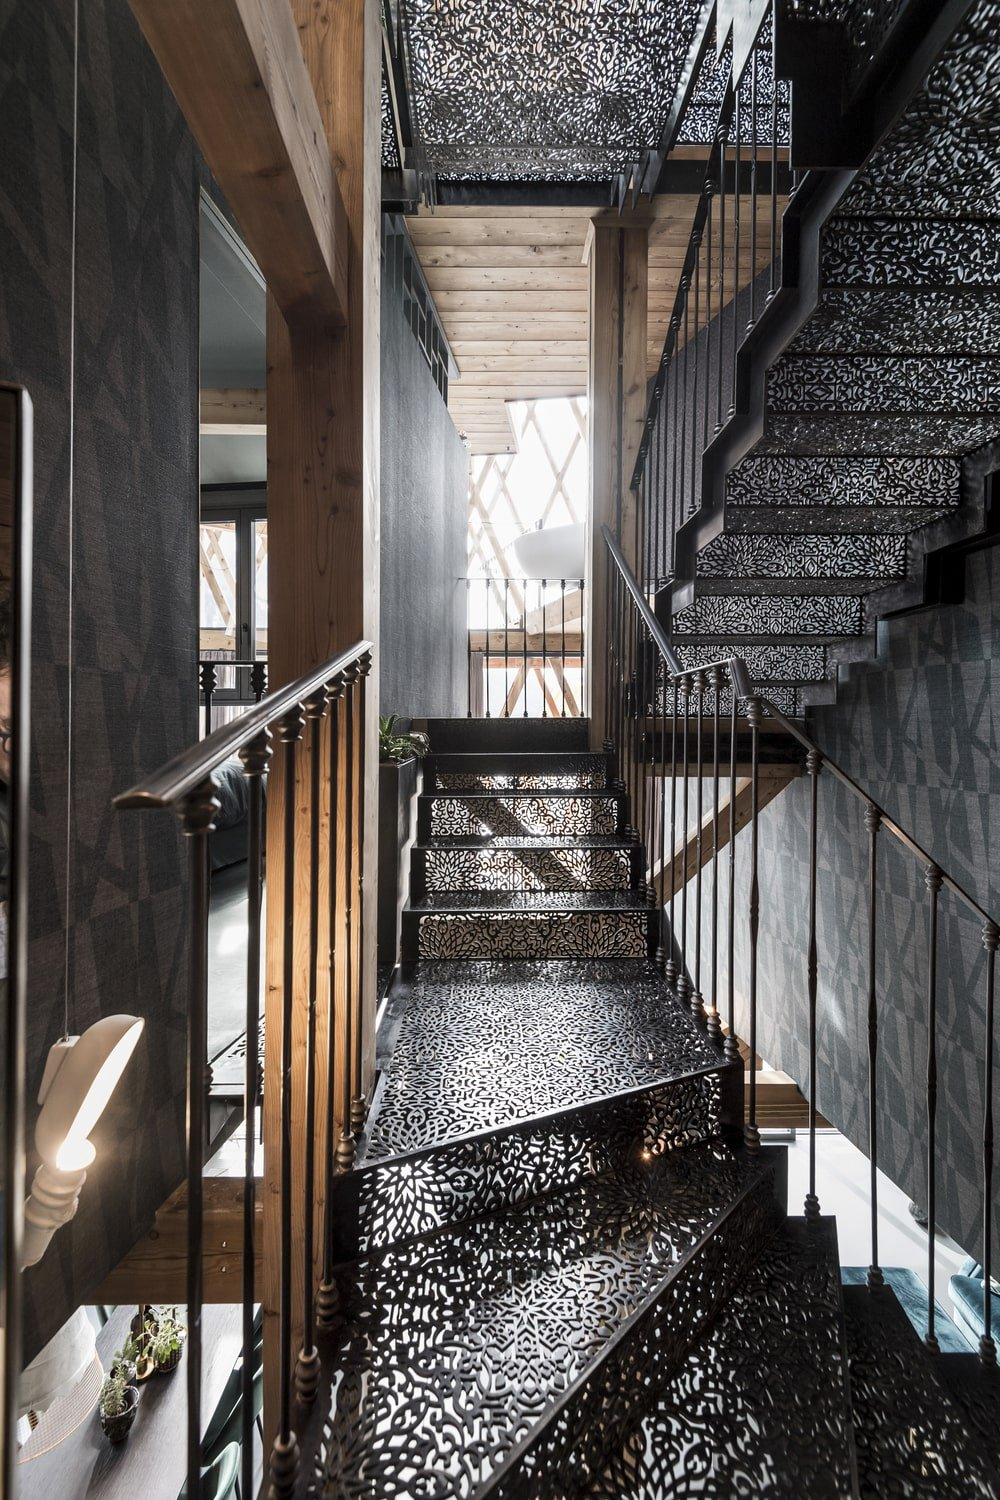 This is a close look at the staircase that has an intricate design and black railings.